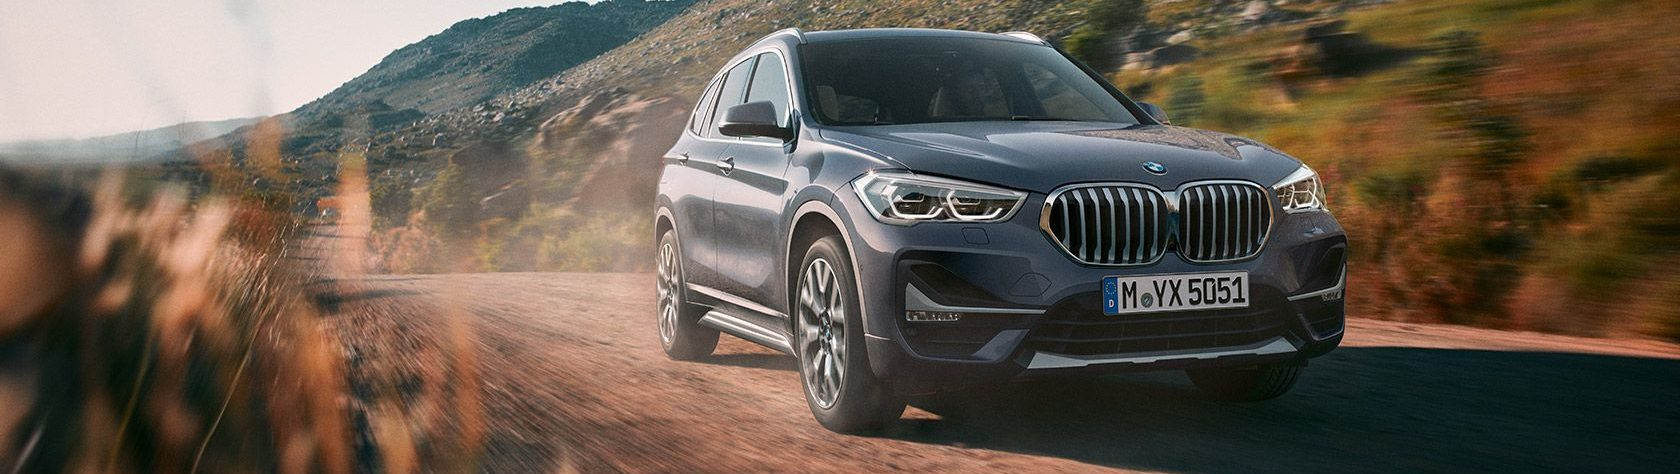 BMW X1 driving down a dusty country road